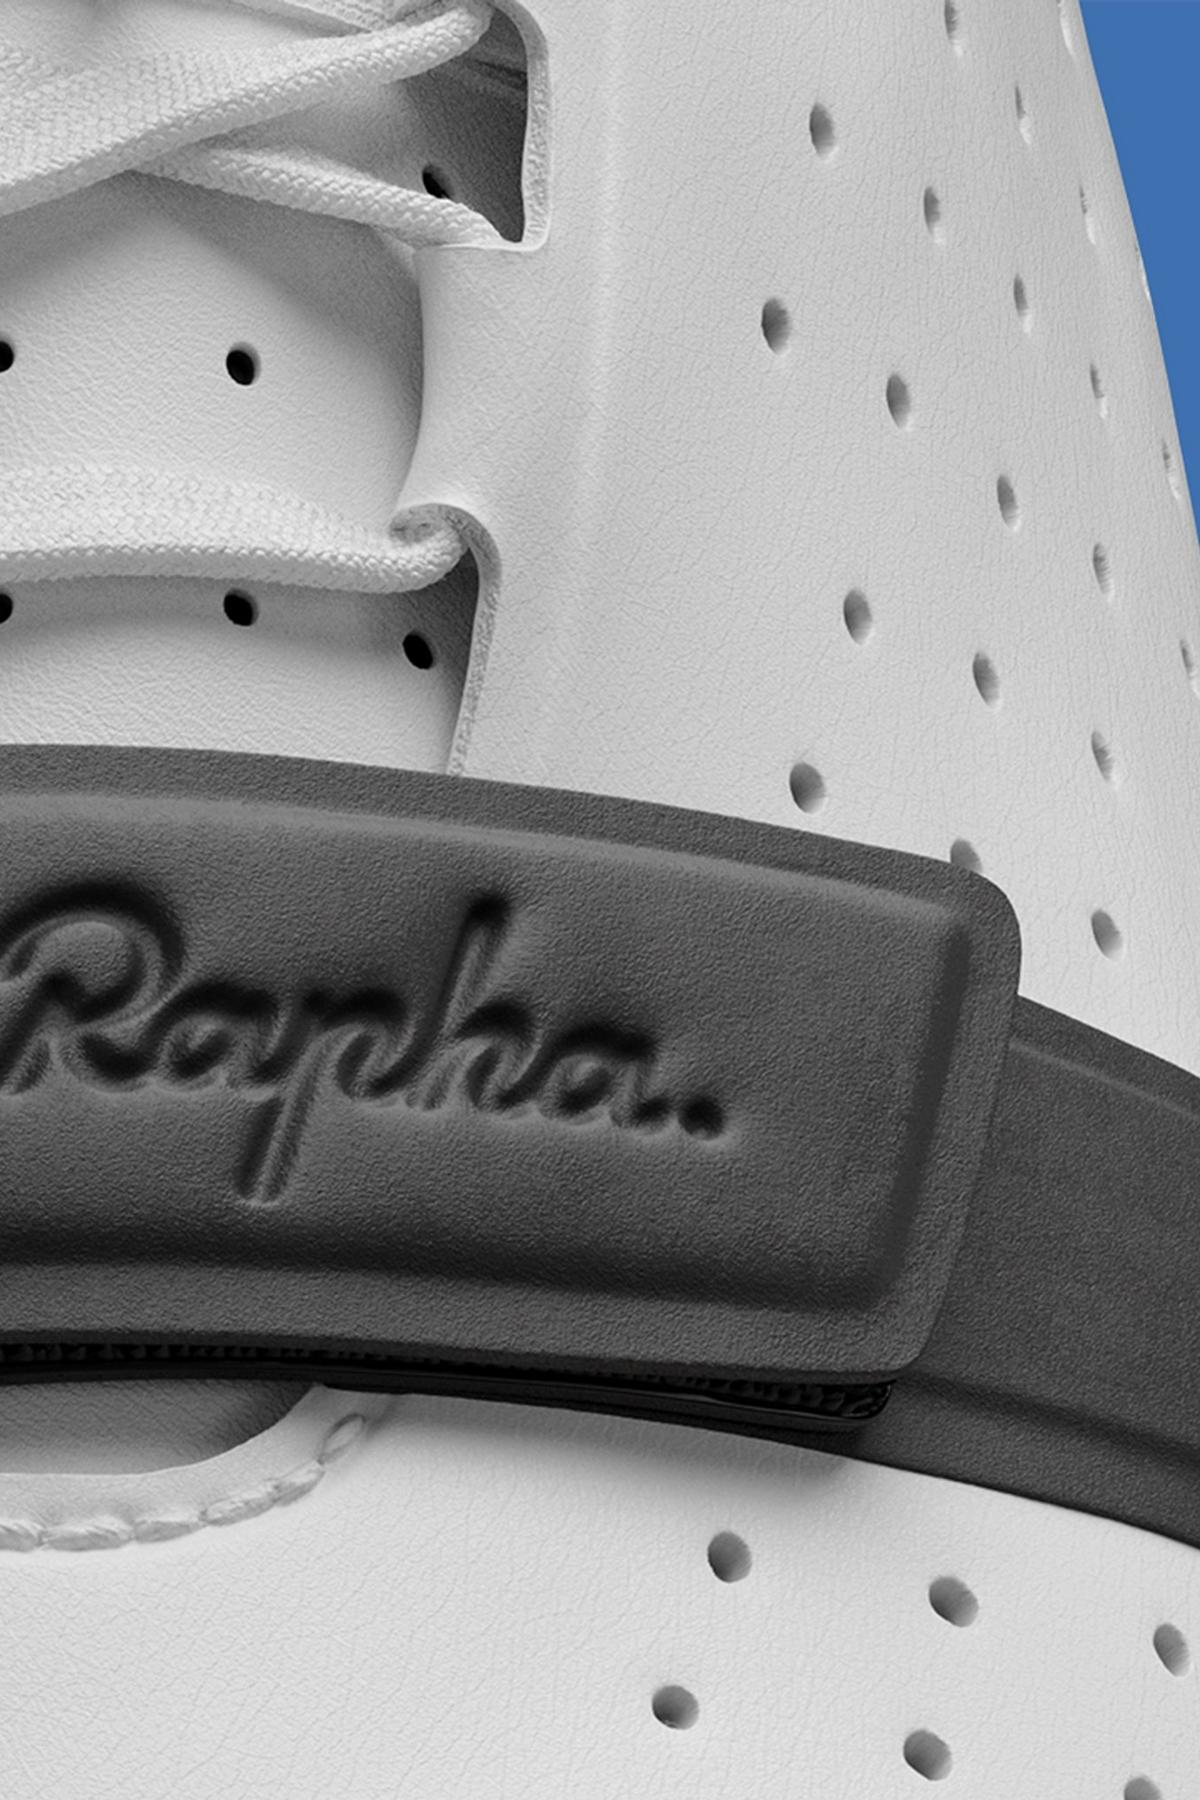 Rapha Classic Cycling Shoes